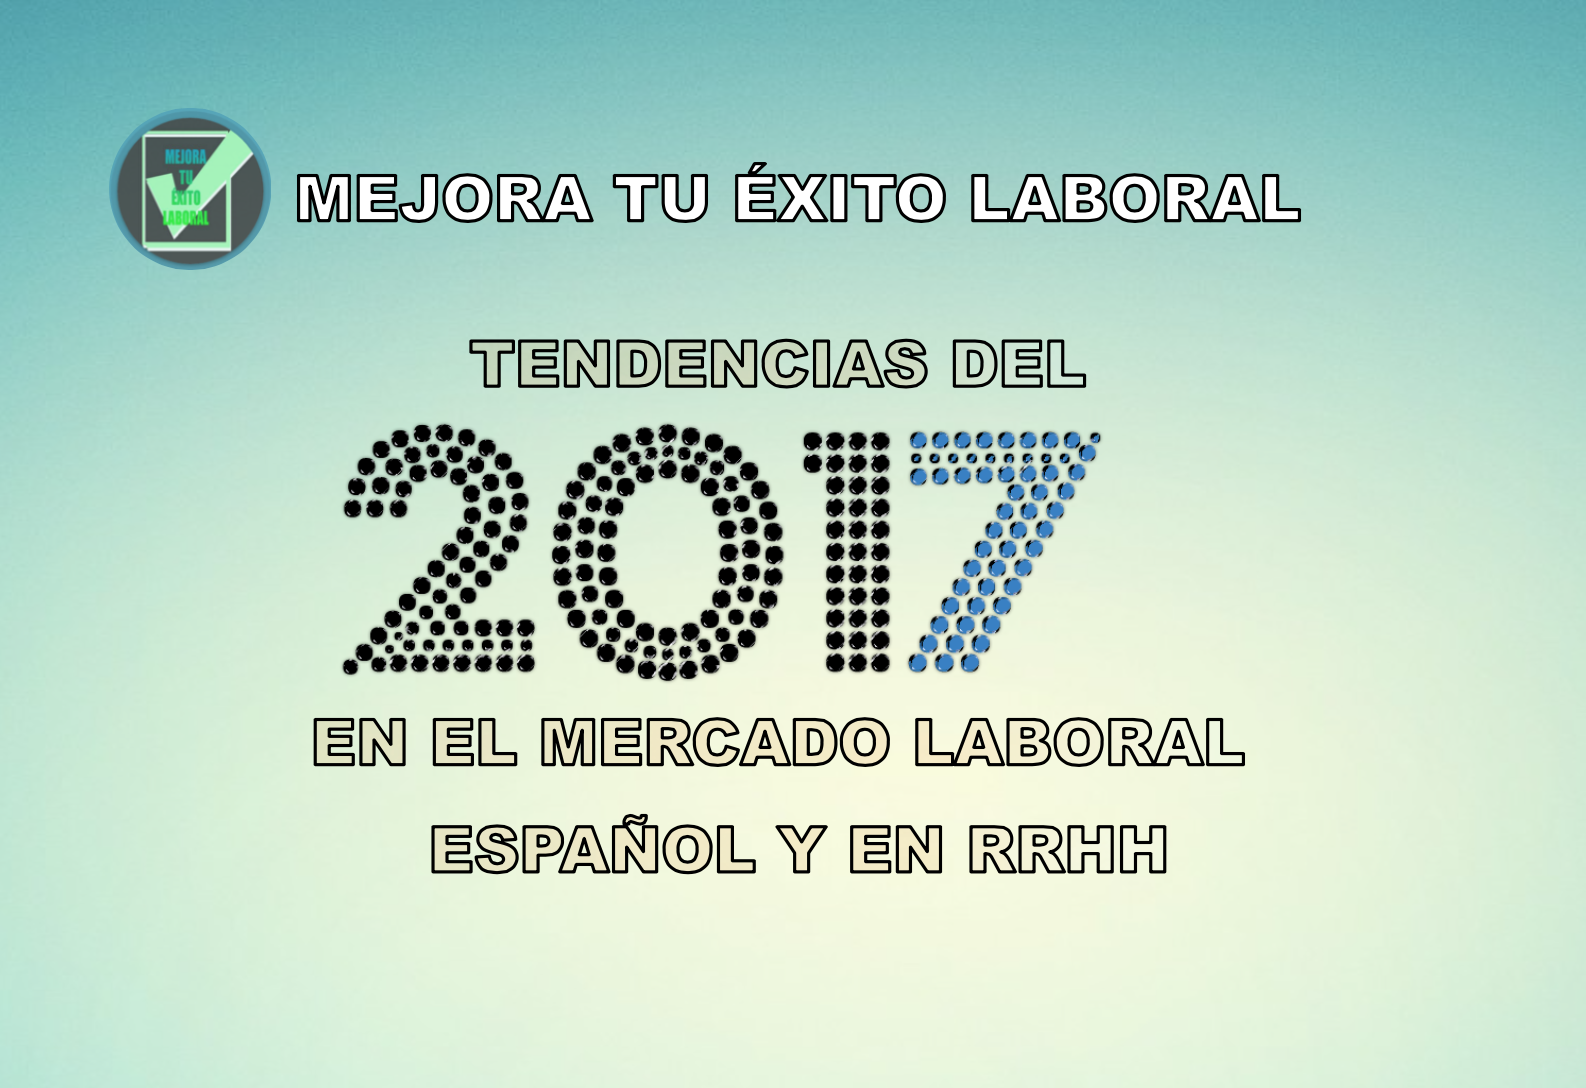 tendencias, 2017, mercado laboral, trabajo, tendencies, labour market, españa, spain, recursos humanos, human resources, contratación, competencias